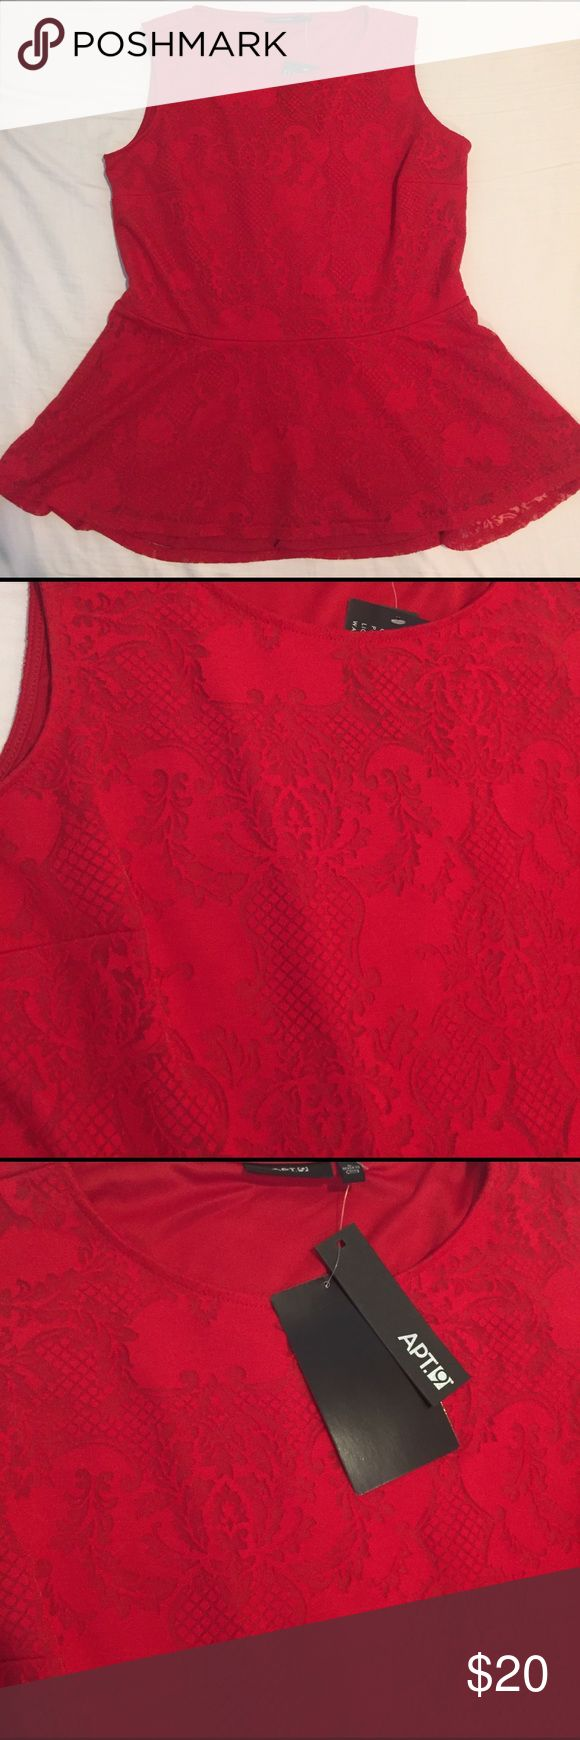 Peplum top Bright red peplum. Never worn. Elegant lace-like pattern. Size large. 62% rayon, 33% polyester, 5% spandex Apt. 9 Tops Blouses